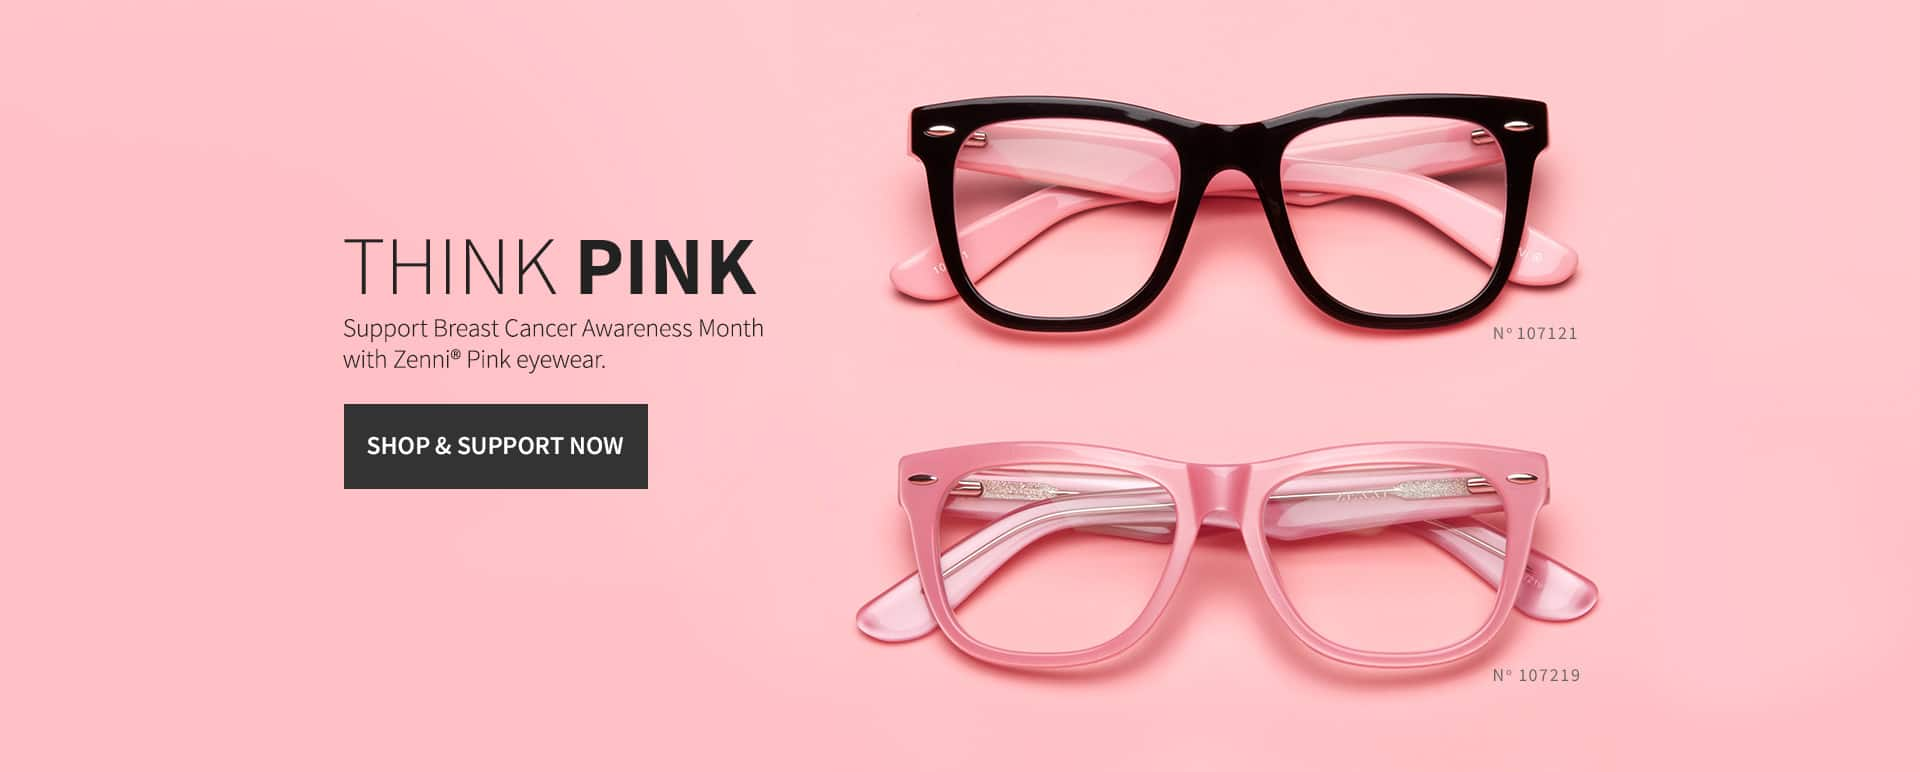 Zenni Optical Affordable Rx Eyeglasses Online